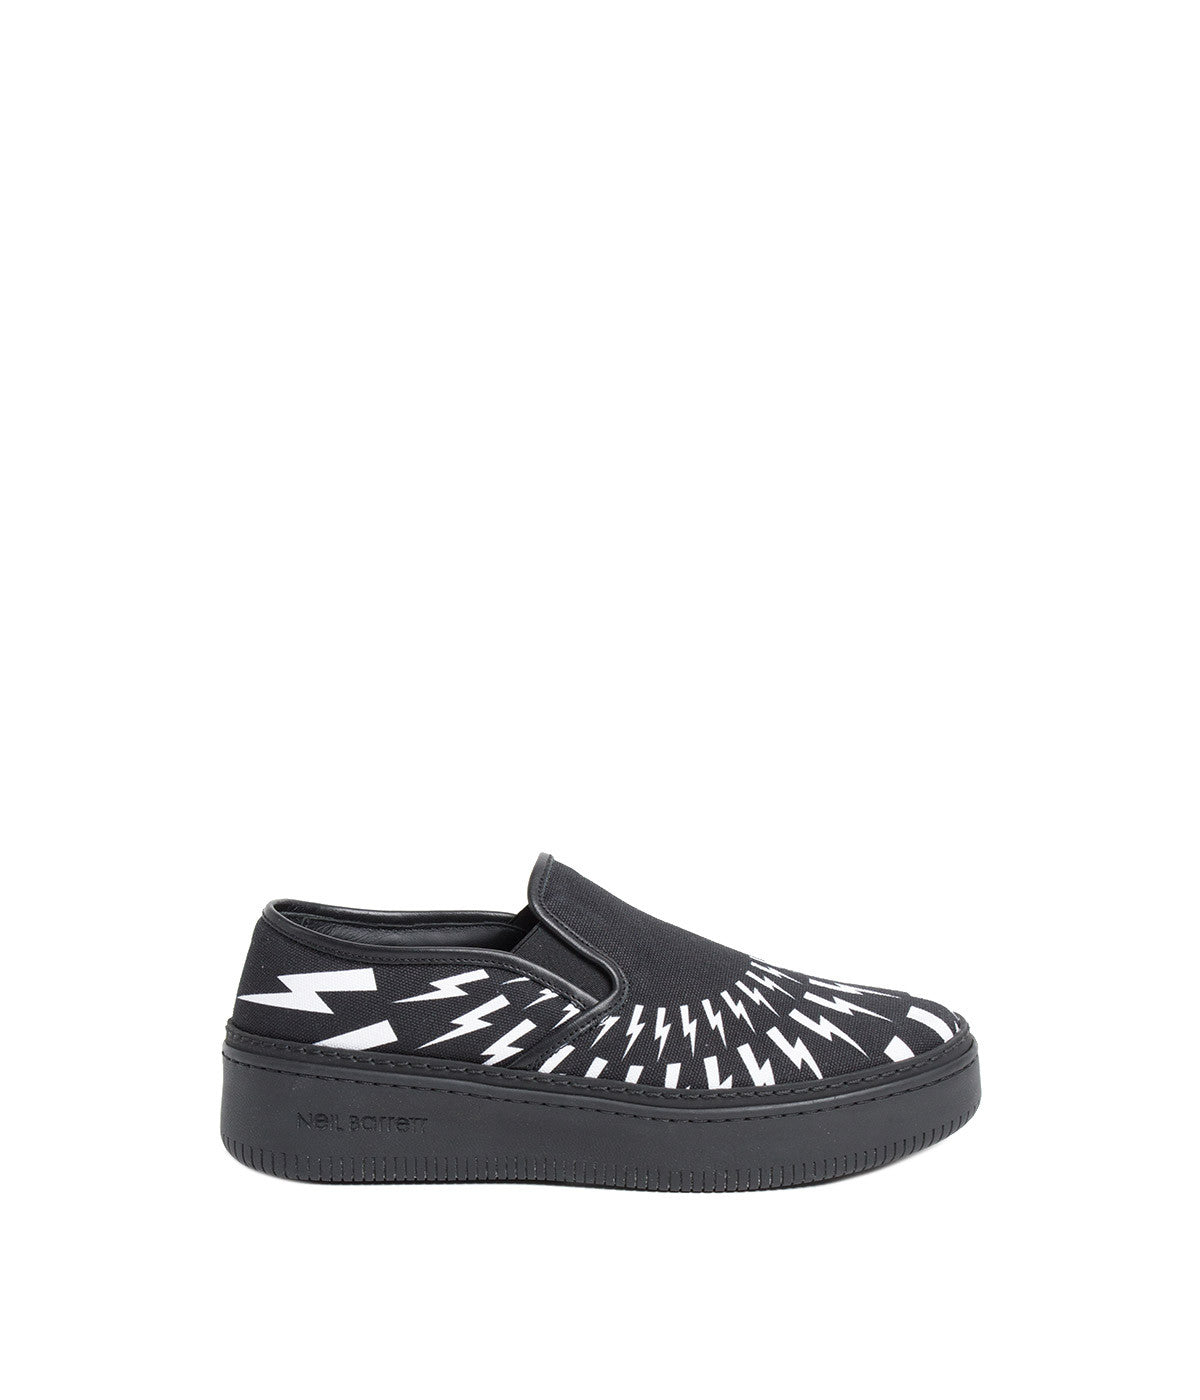 Black Slip-On Basketball Sneakers